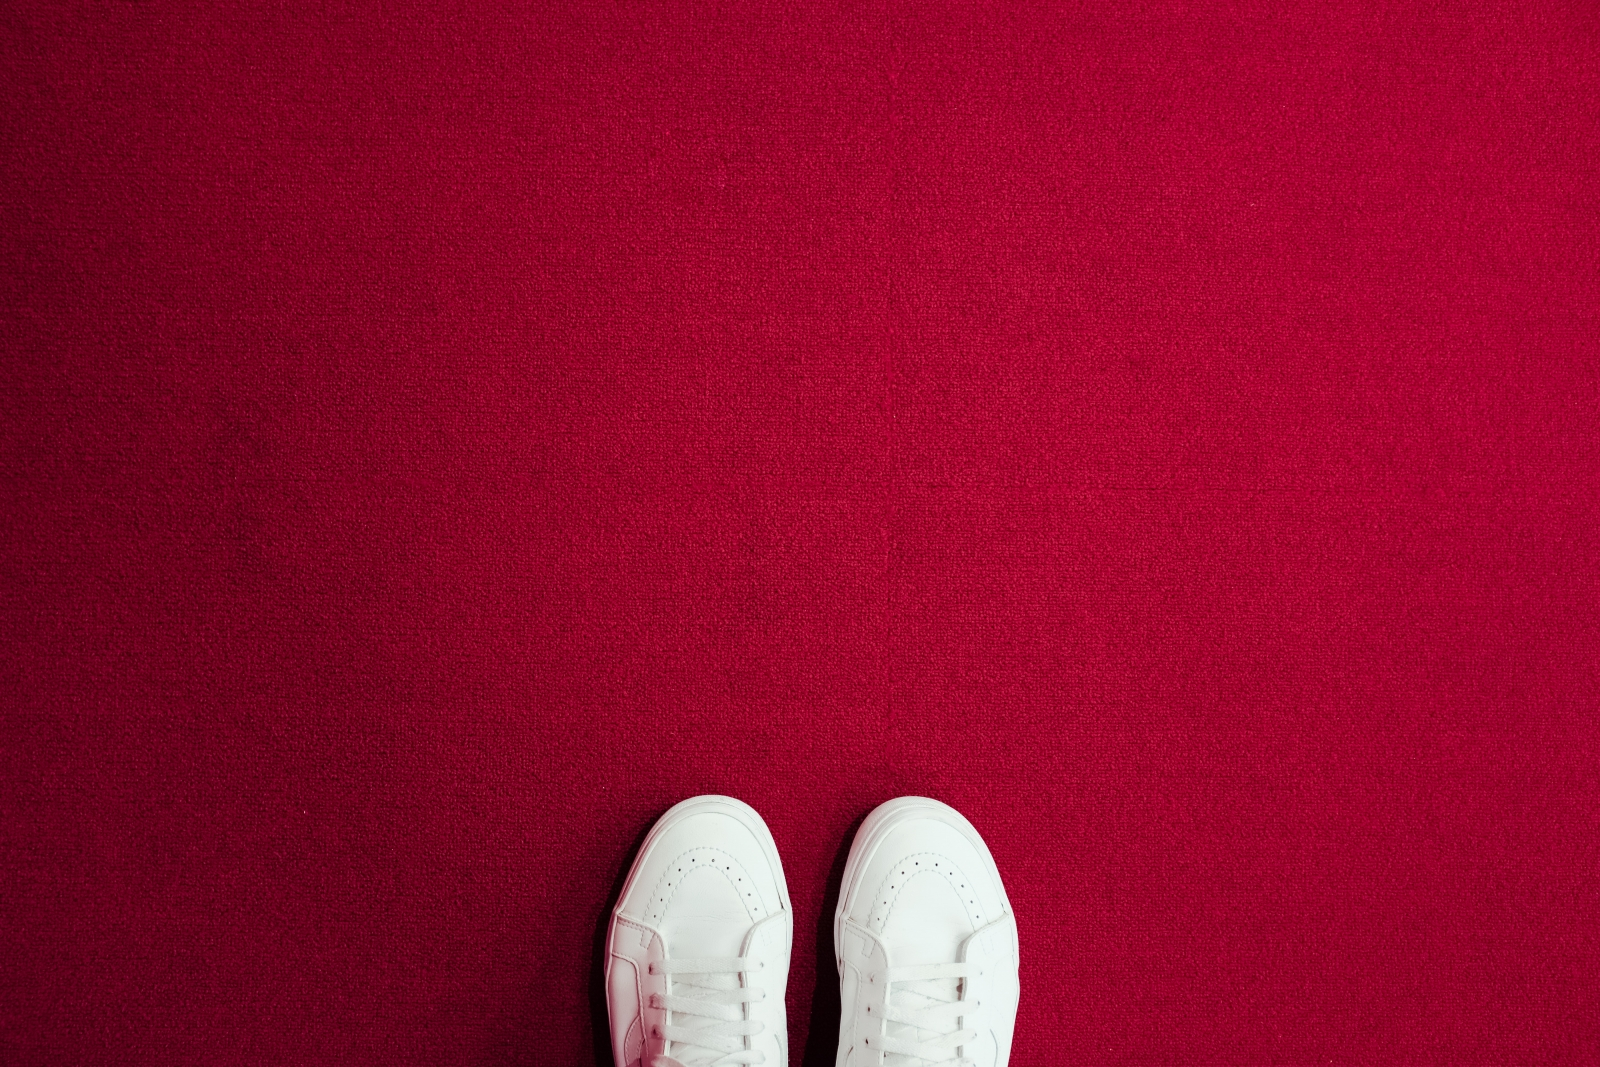 White sneakers on a red carpet. Photo by Christian Chen/Unsplash.